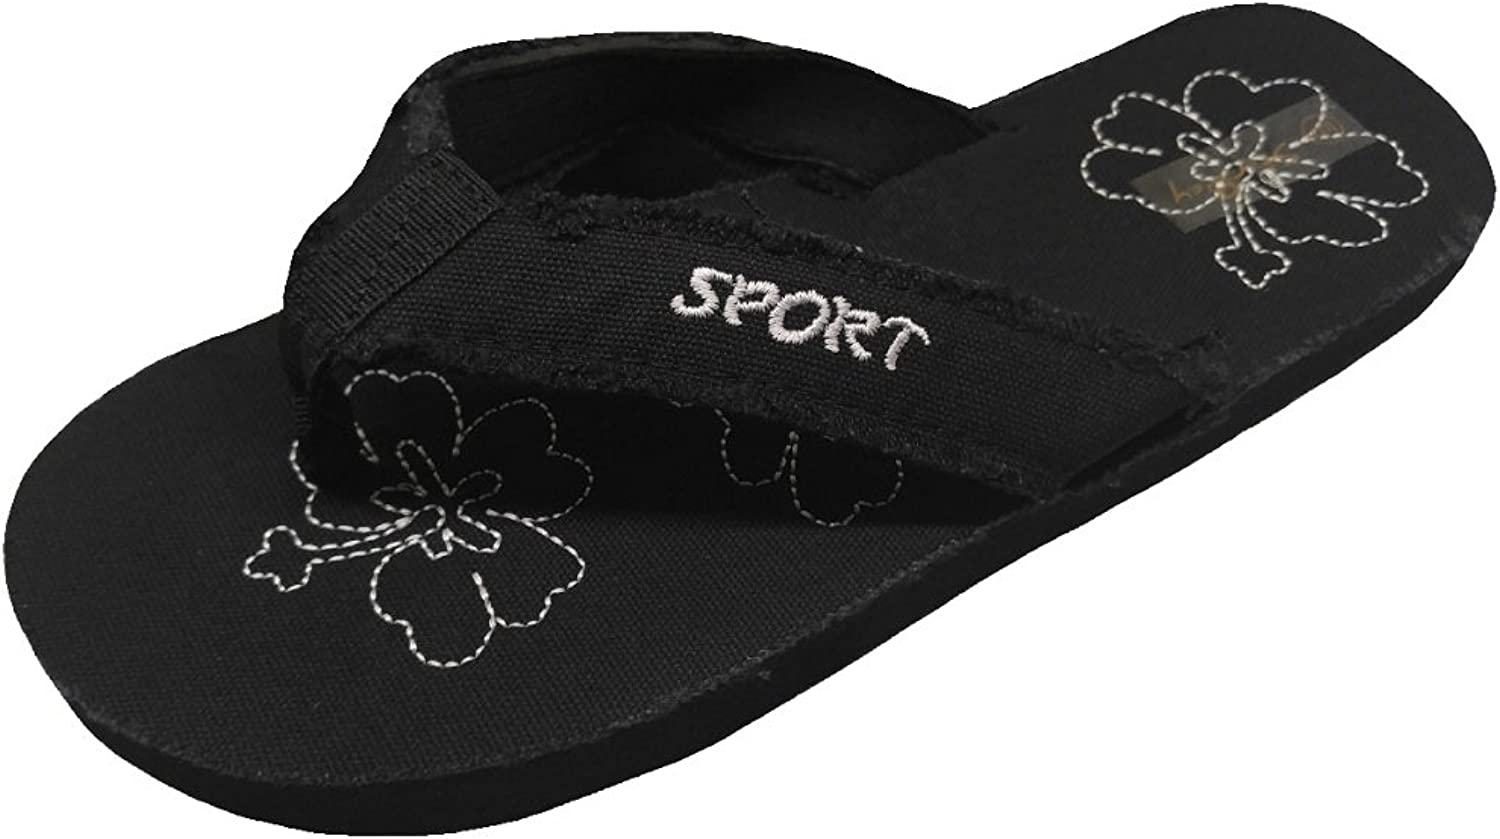 Starbay Women's Lightweight Canvas Thong Flip Flops Great for Summer Beach Casual Everyday